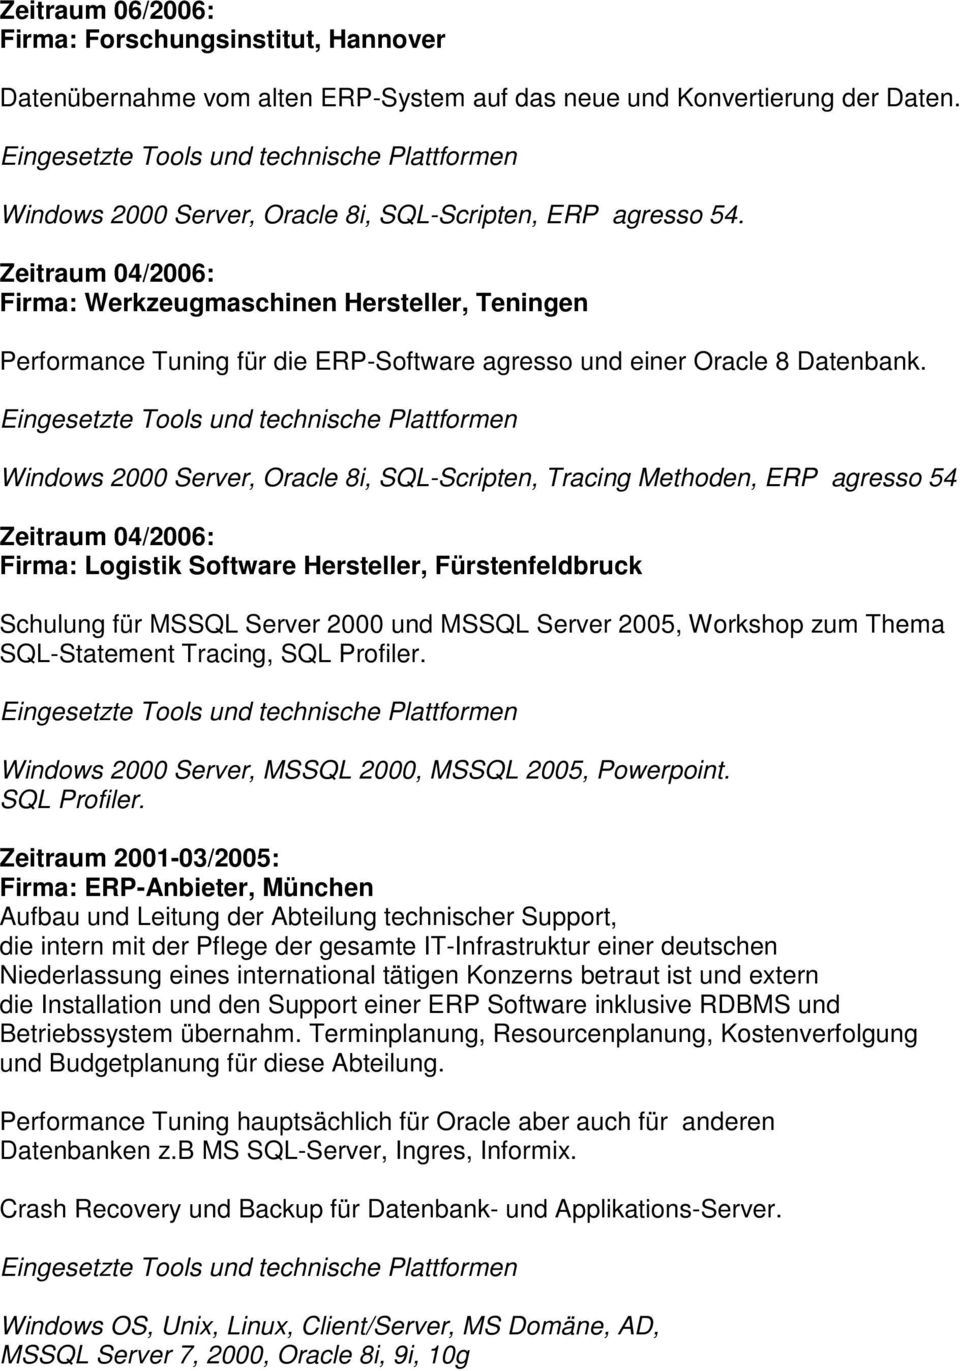 Windows 2000 Server, Oracle 8i, SQL-Scripten, Tracing Methoden, ERP agresso 54 Zeitraum 04/2006: Firma: Logistik Software Hersteller, Fürstenfeldbruck Schulung für MSSQL Server 2000 und MSSQL Server